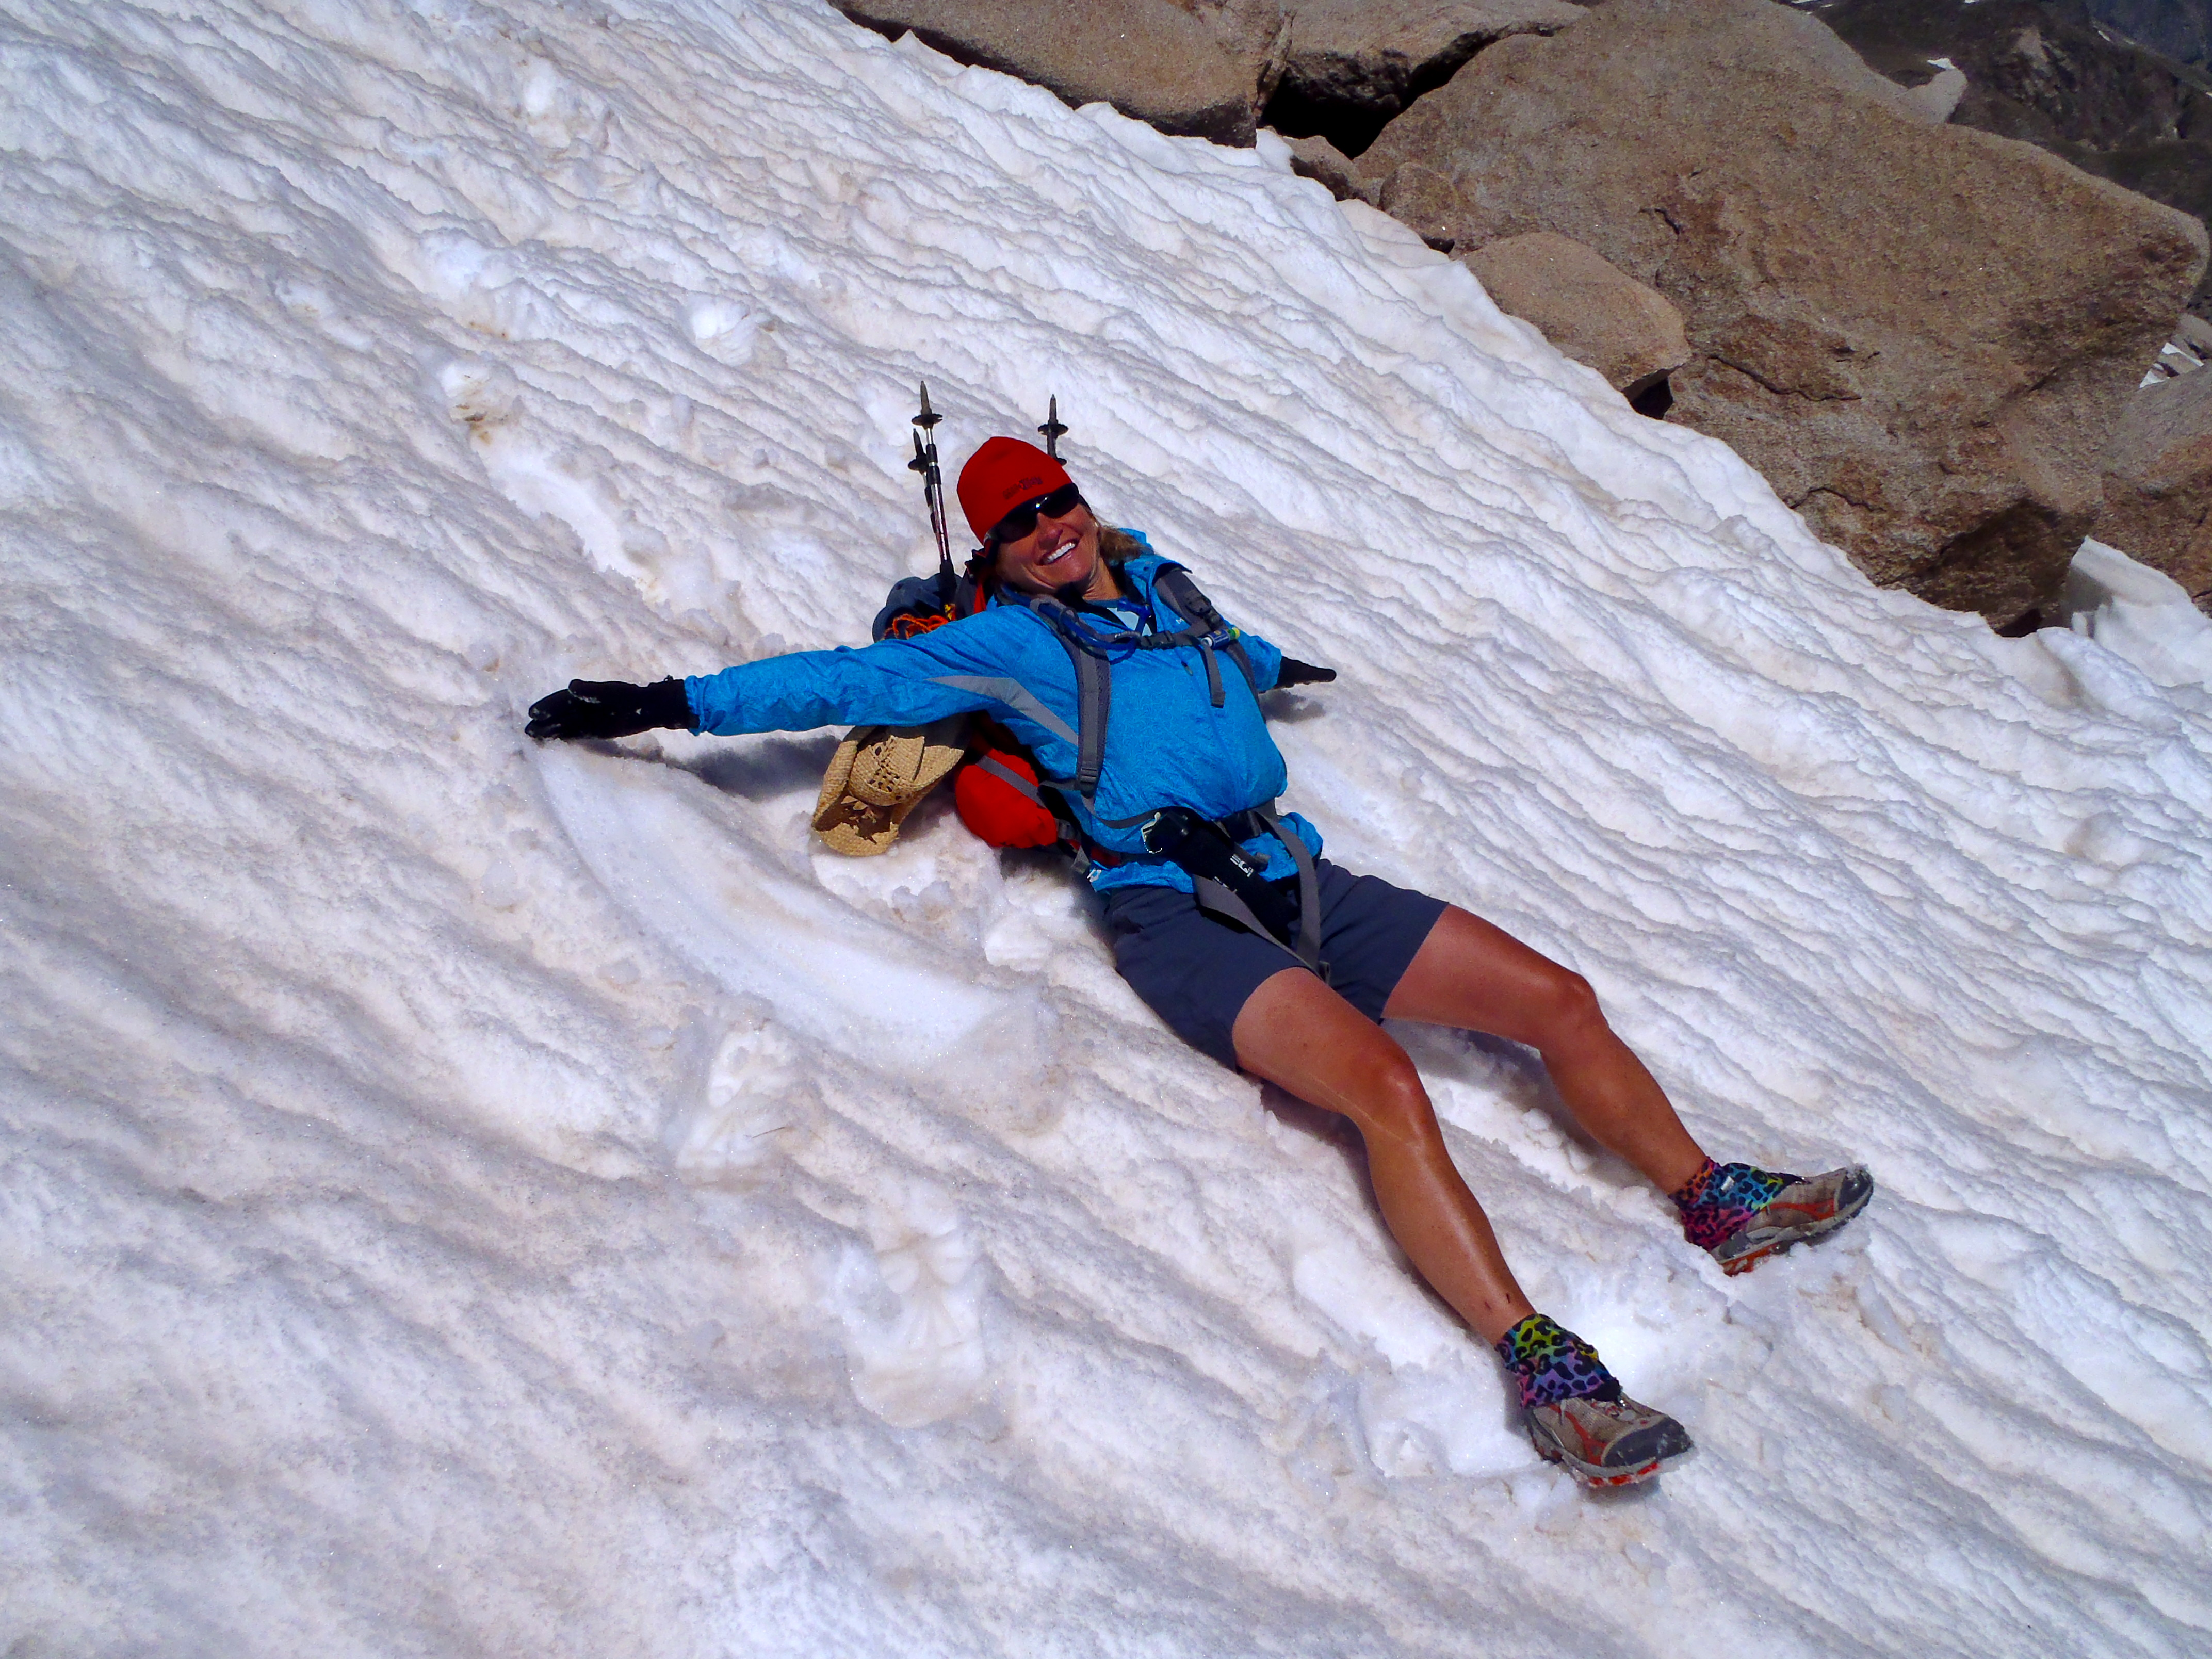 Doing an (awkward backpack-bearing) snow angel on our way down.